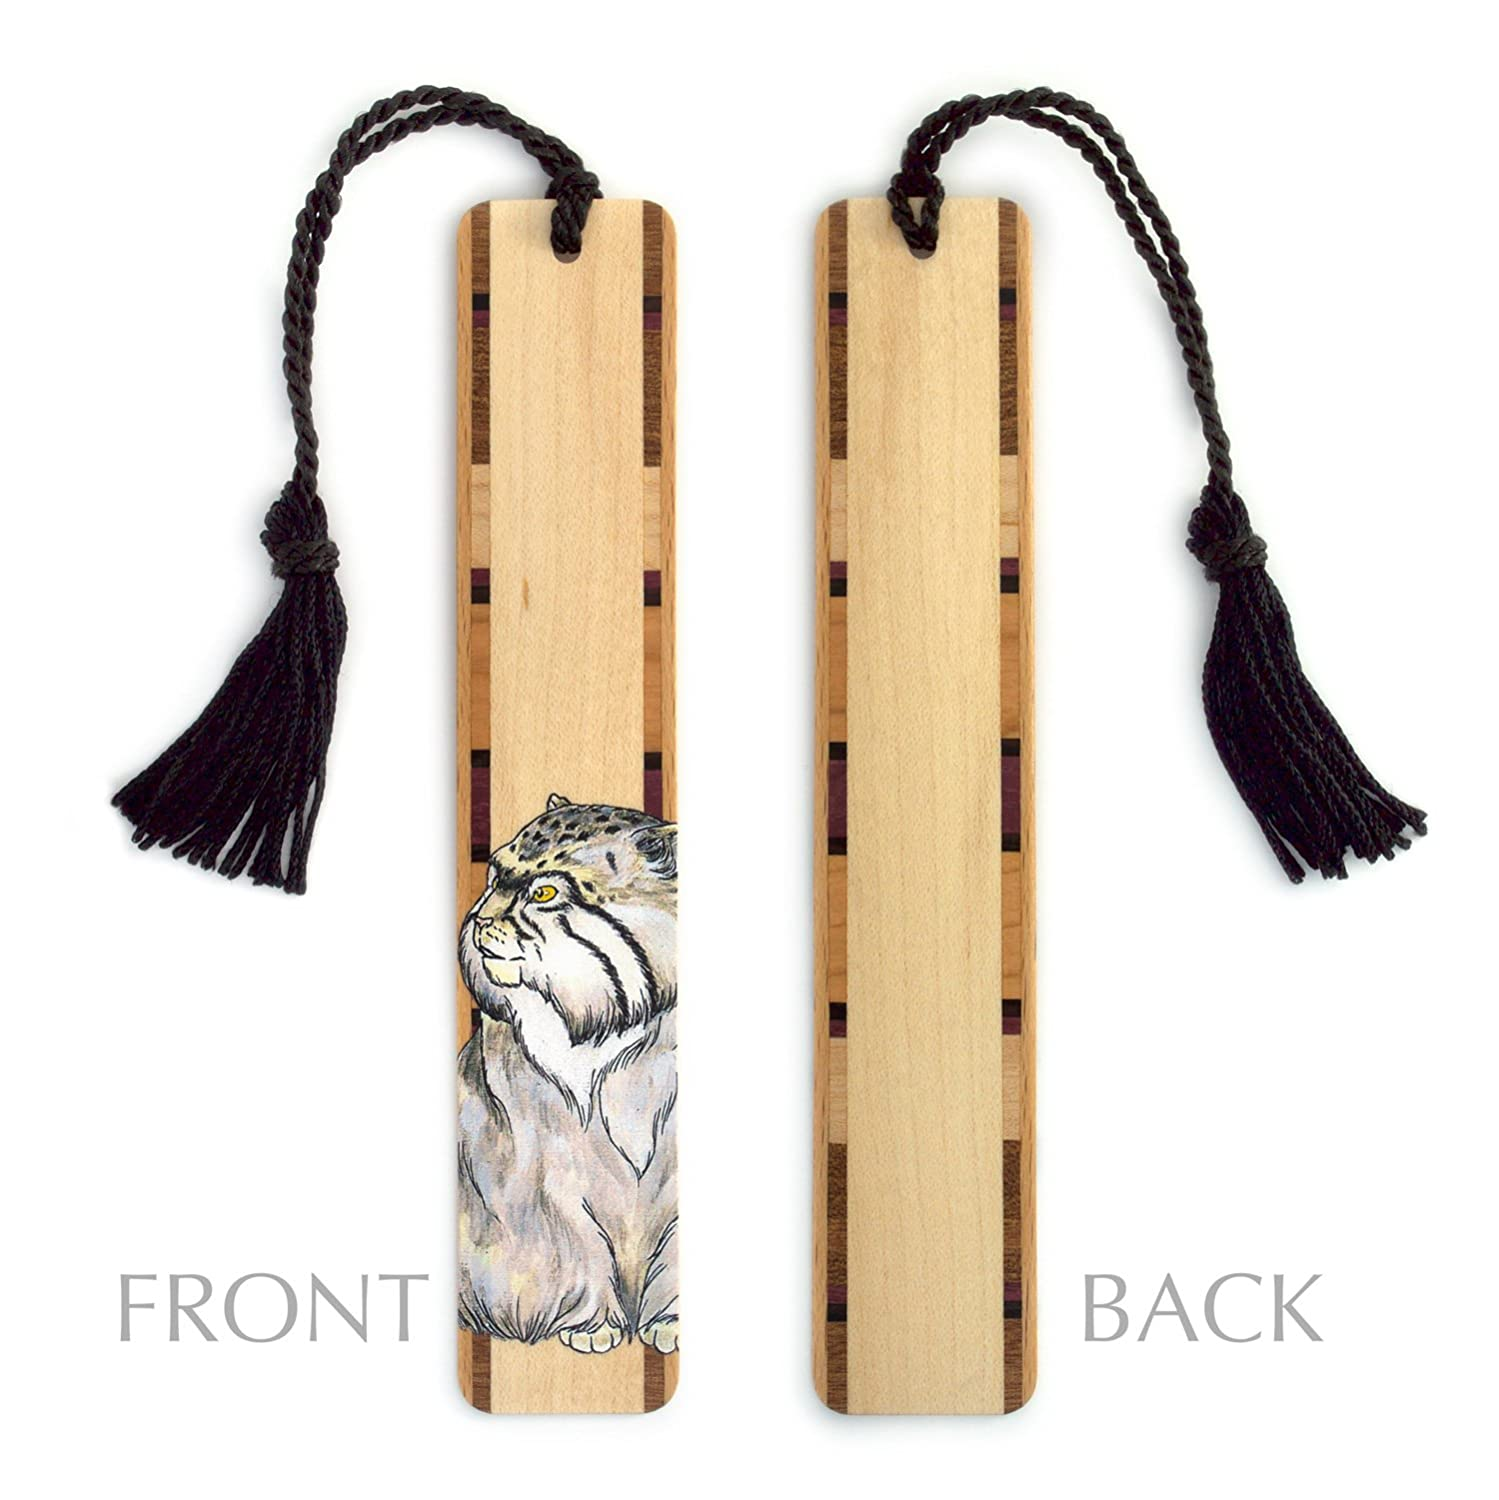 Amazon.com : Wood Bookmark with Cat Drawing by Kathleen Barsness - Includes Black Rope Tassel - American Made : Office Products